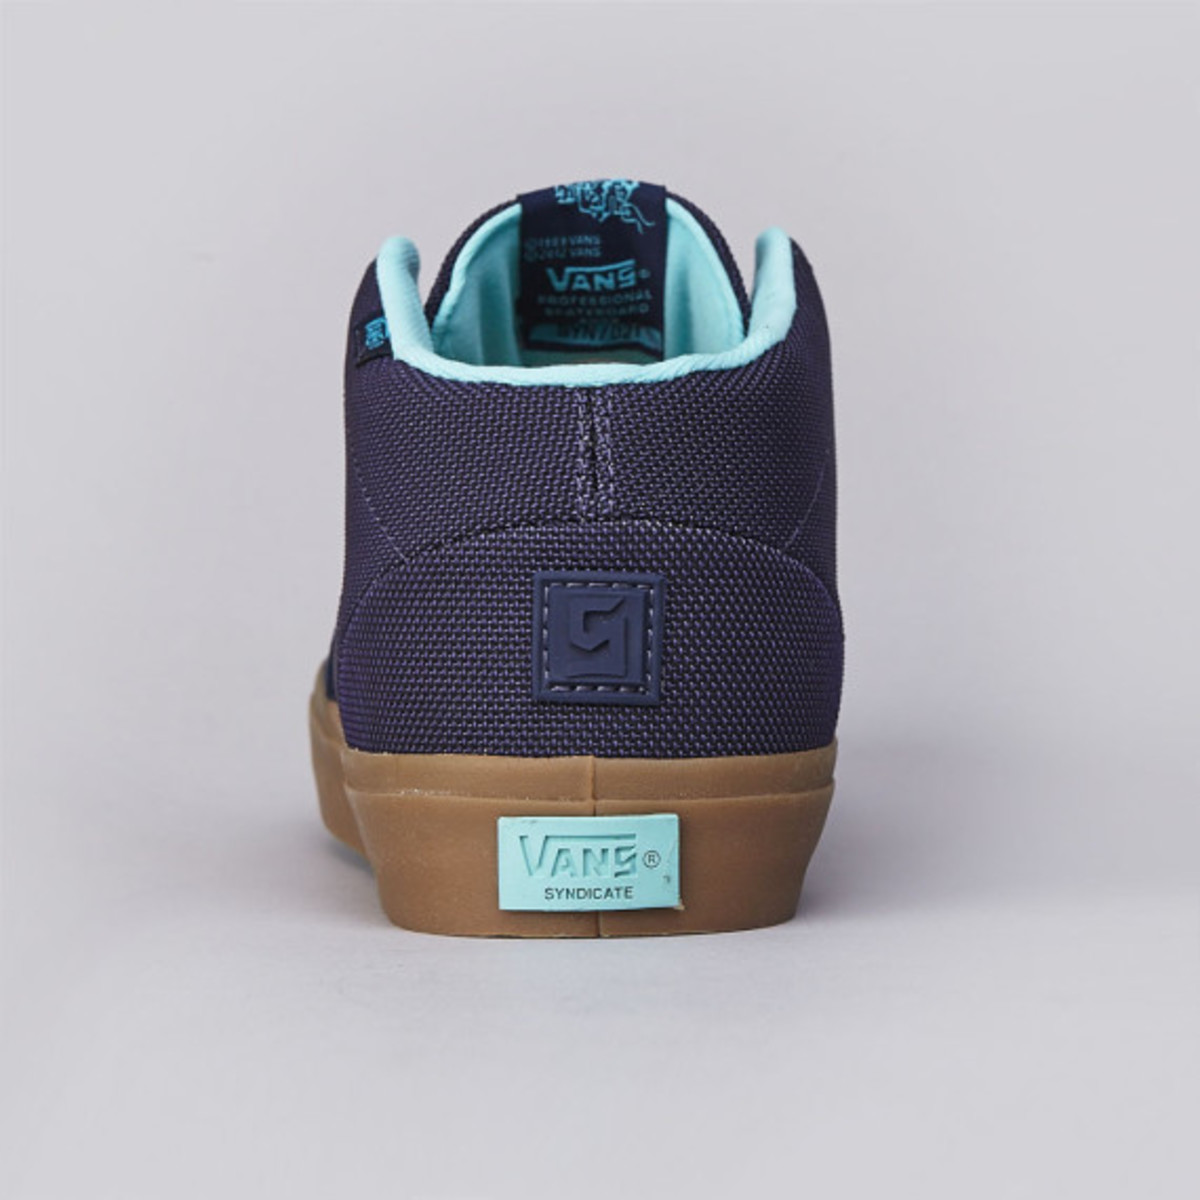 "VANS Syndicate Cab Lite ""S"" - June 2013 Releases - 10"